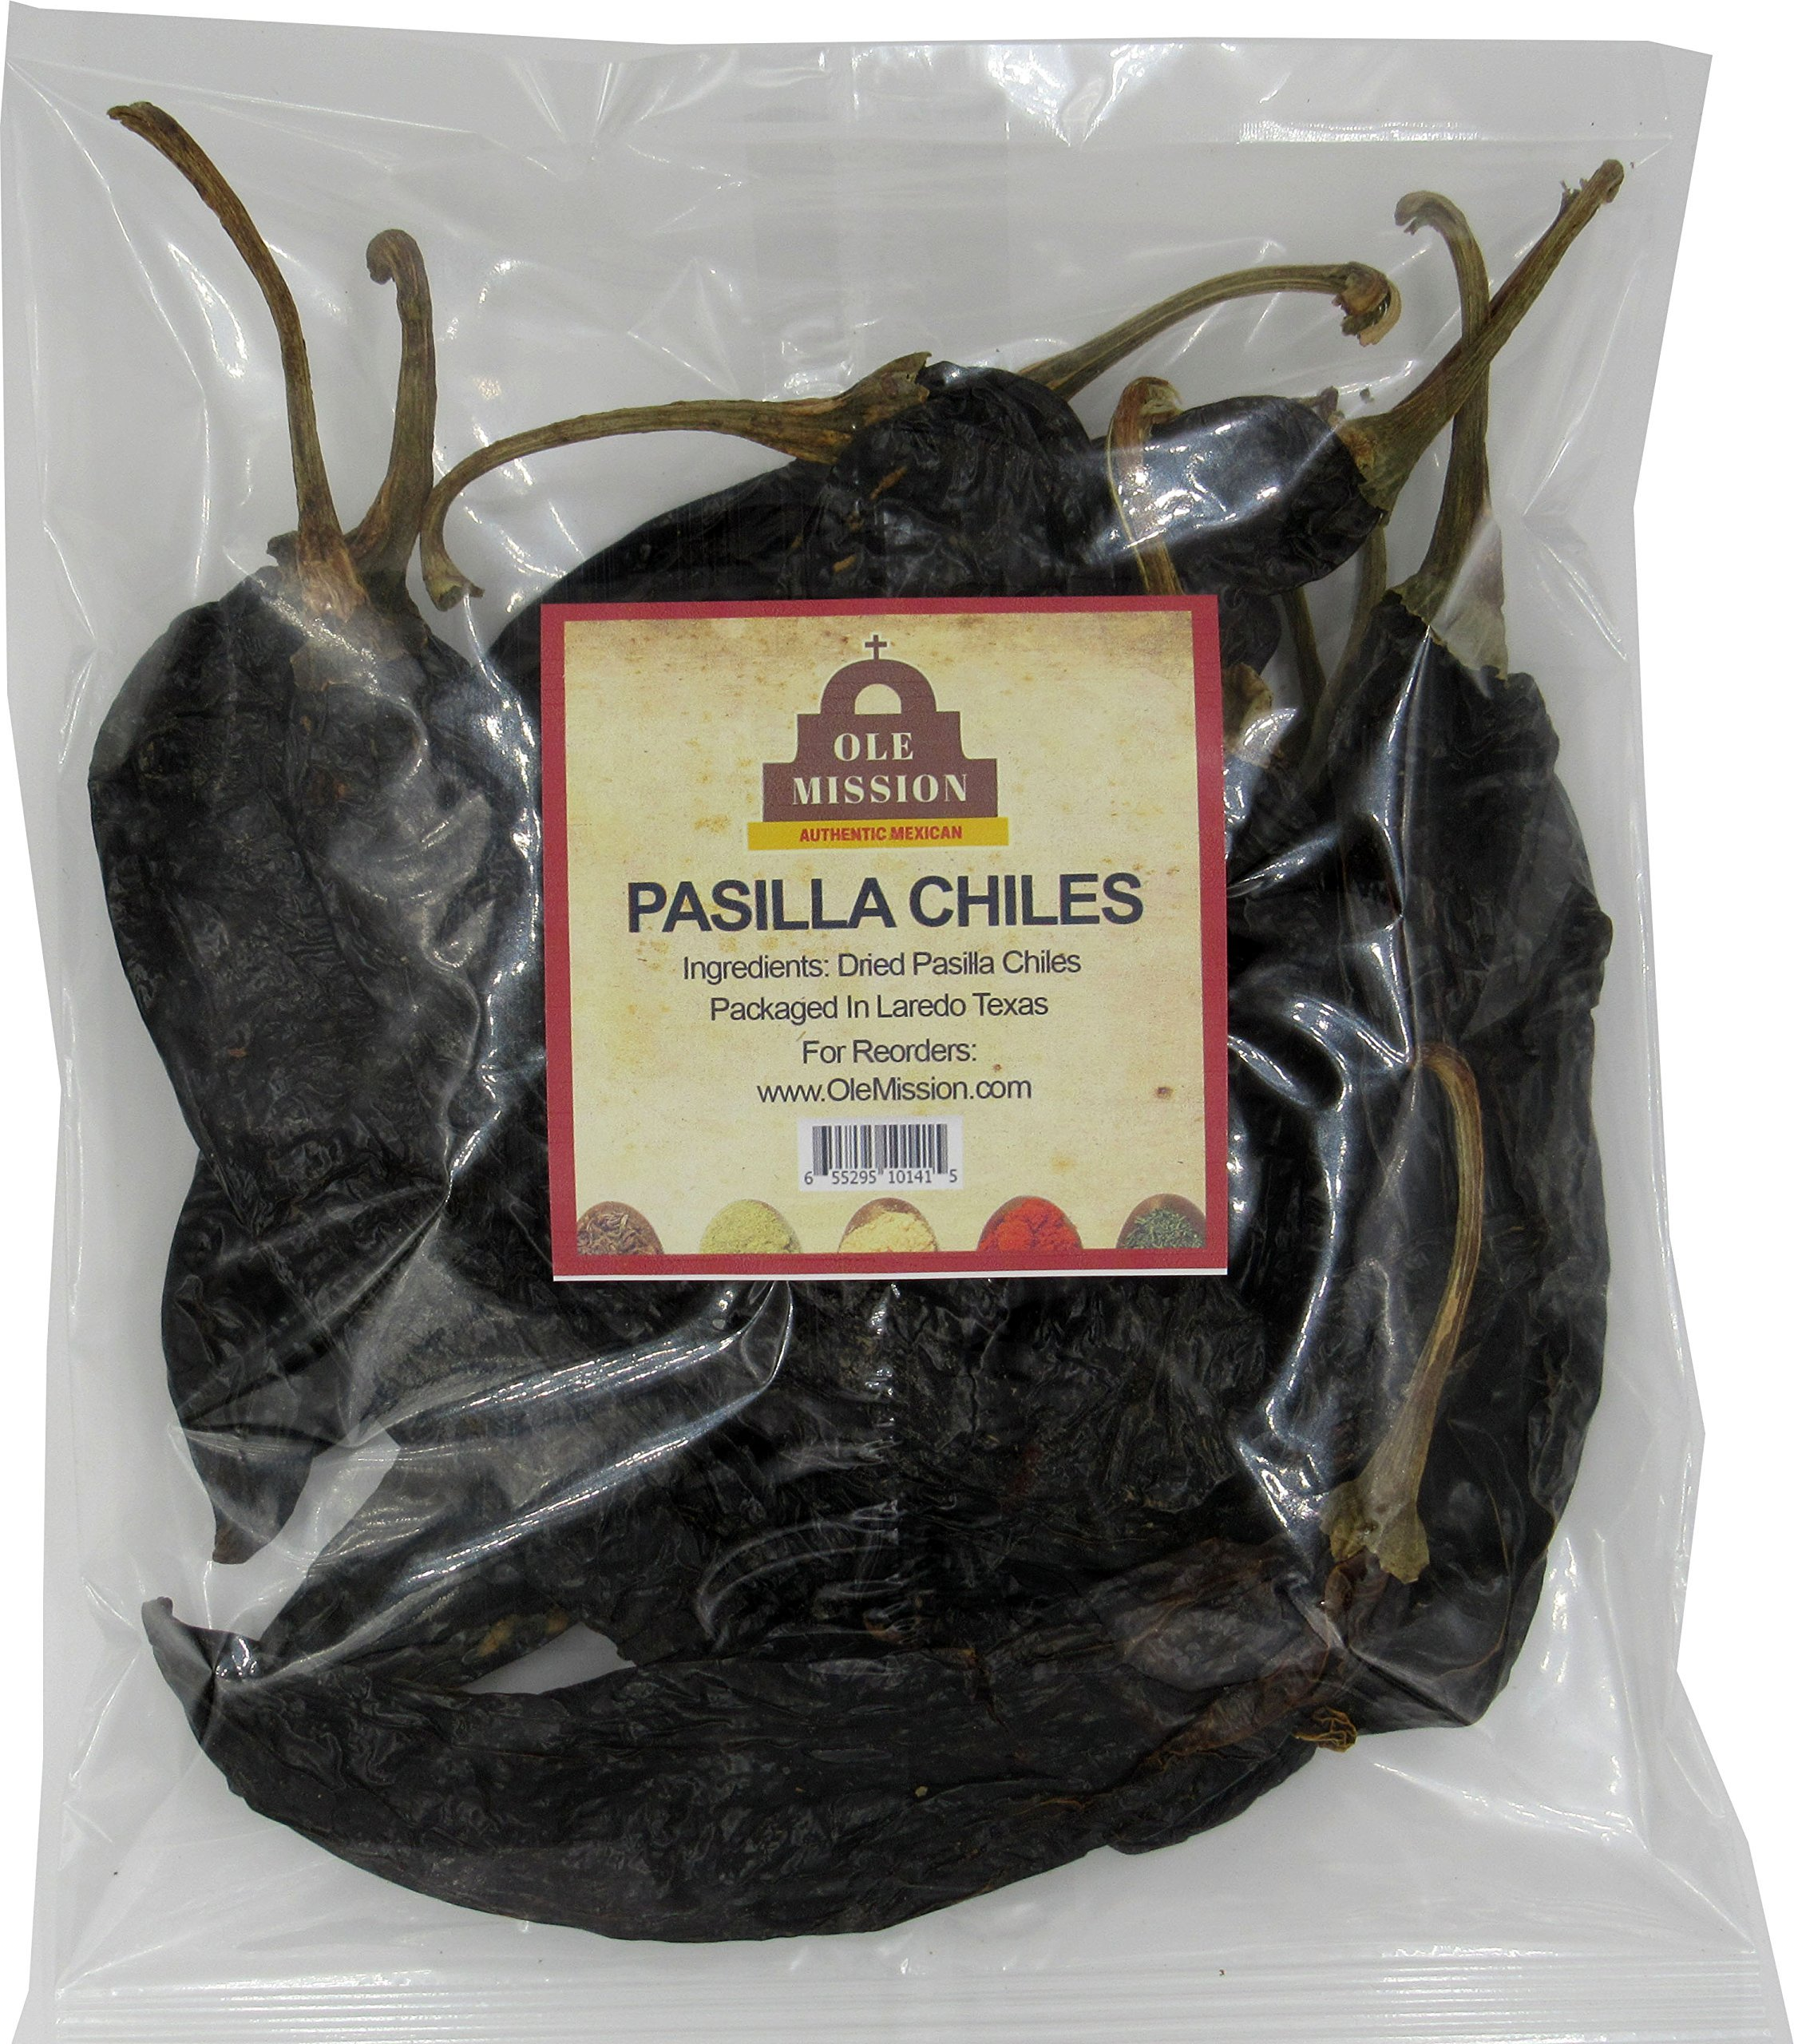 Chile Pasilla Dried 4 oz For Mole Sauce, Taco Seasoning, Tamales, Salsa, Chili, Meats, Soups, Stews by Ole Mission